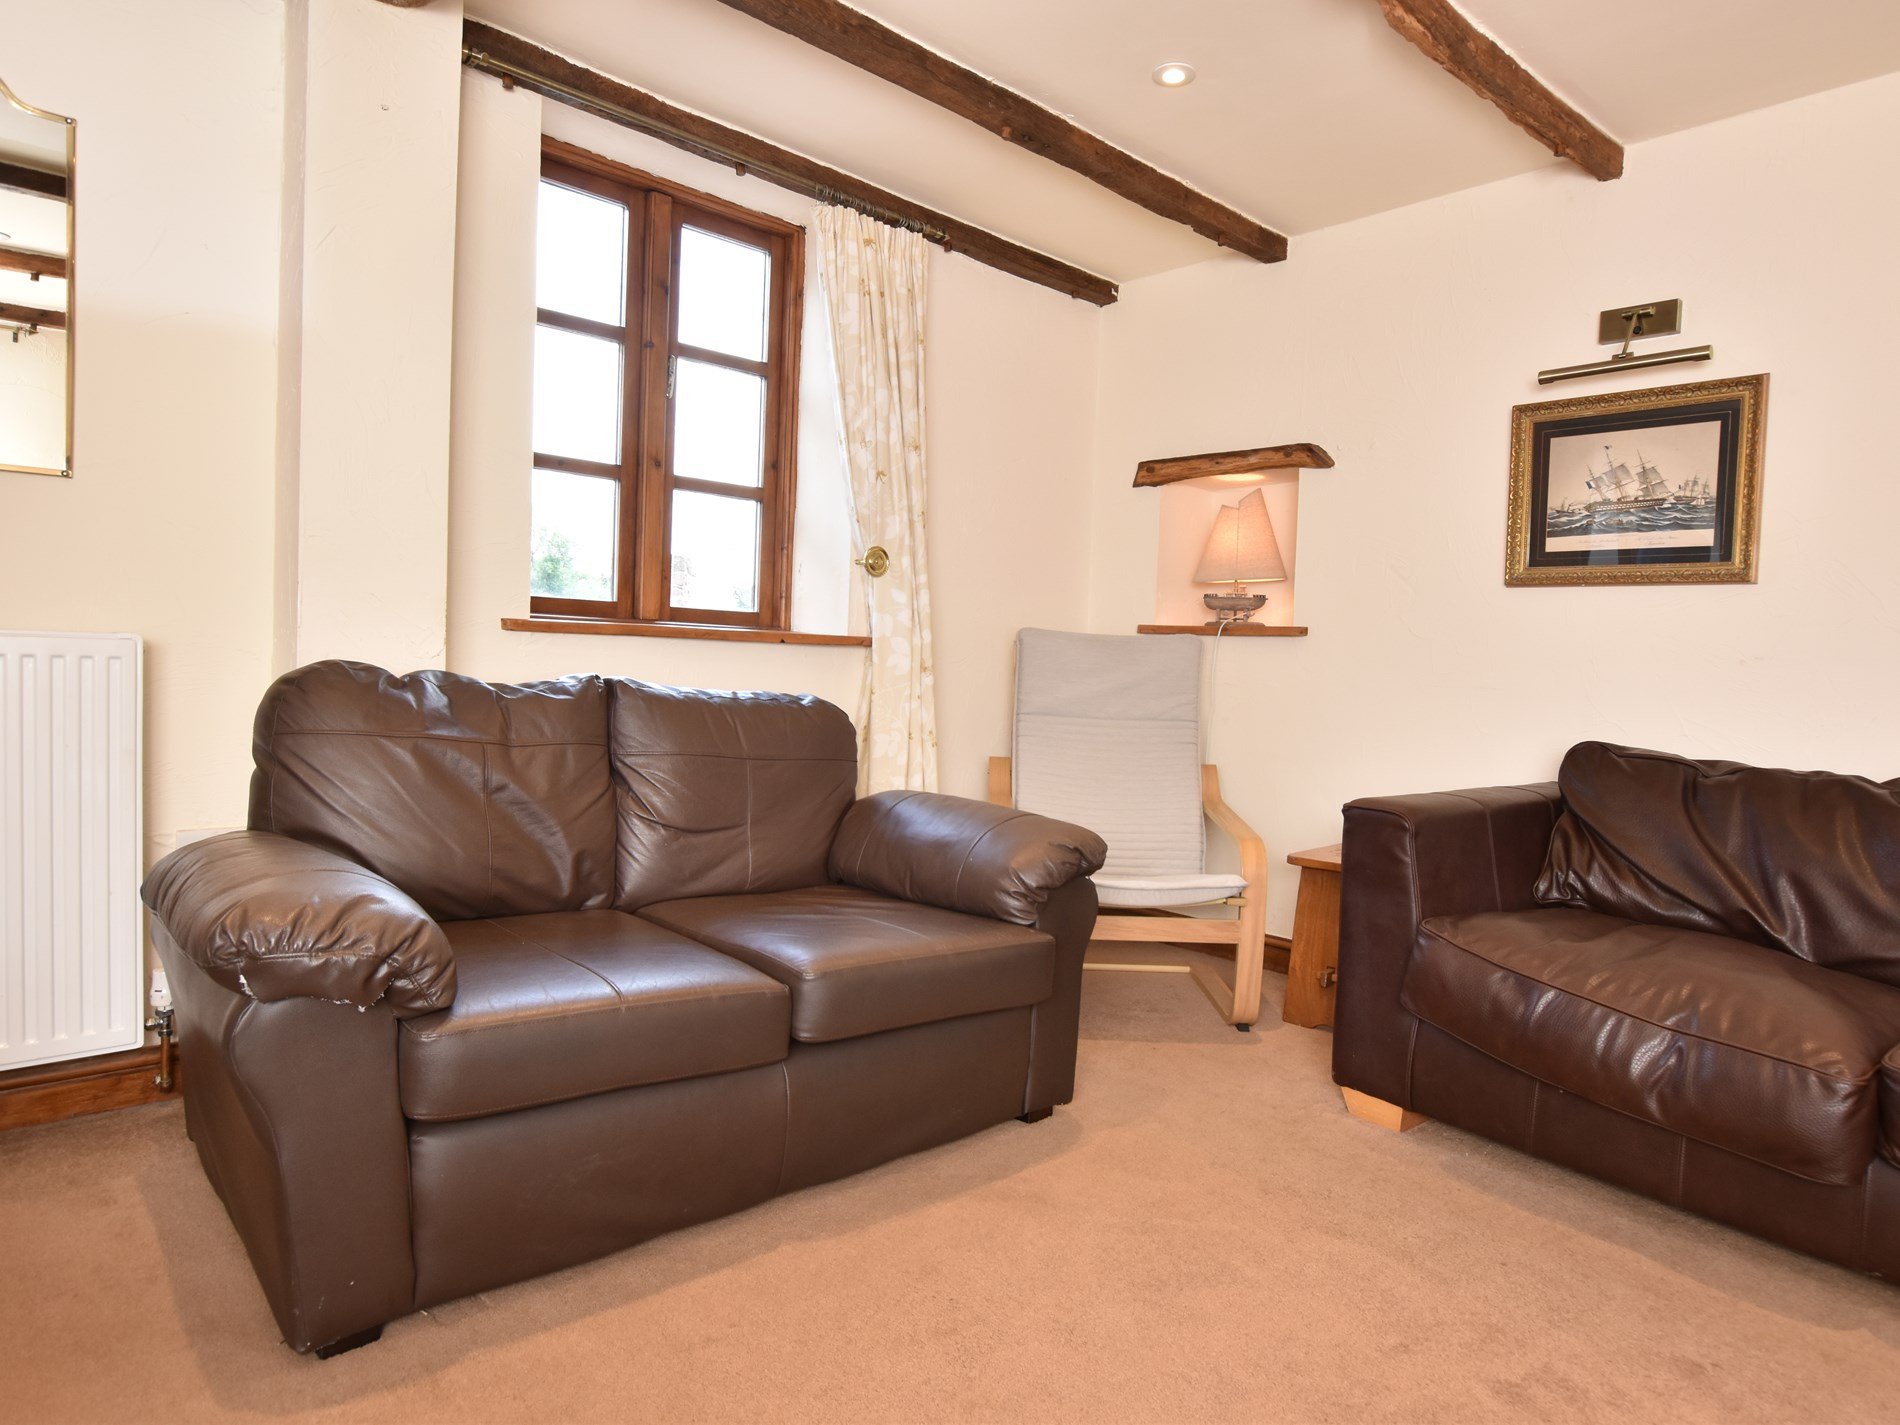 4 Bedroom House in Shropshire, Heart of England